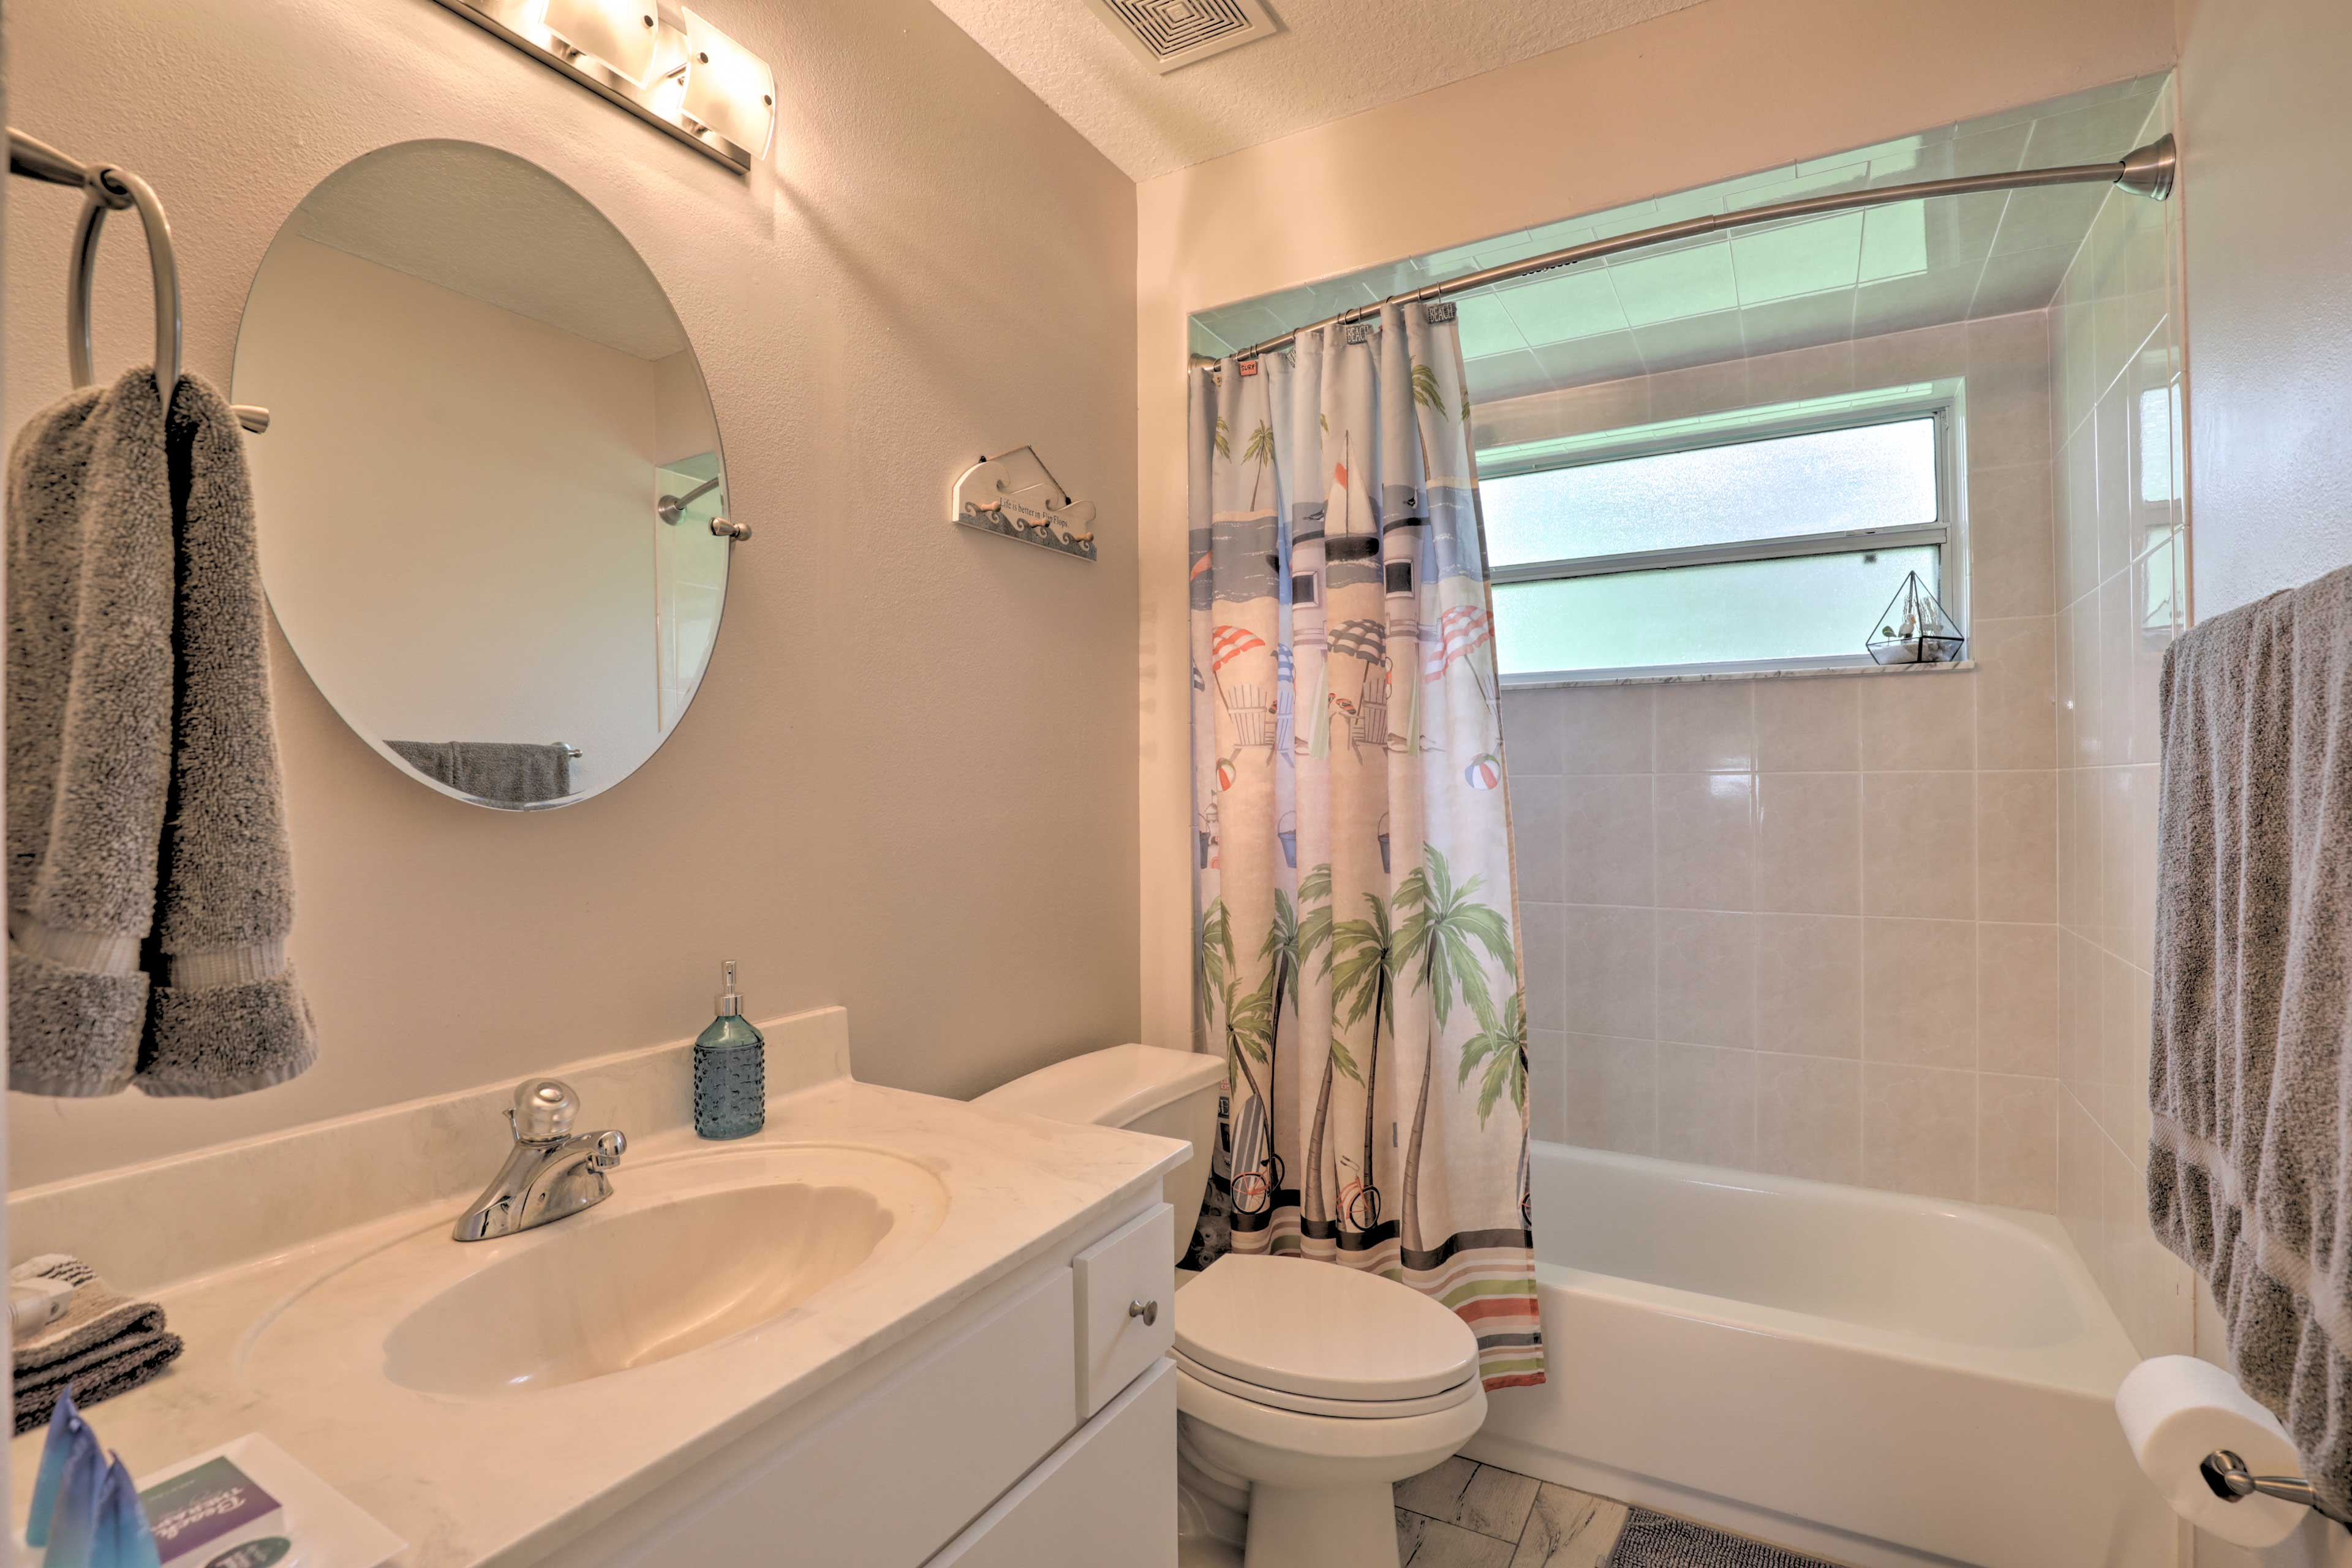 Rinse off in the shower/tub combo in the third bathroom.